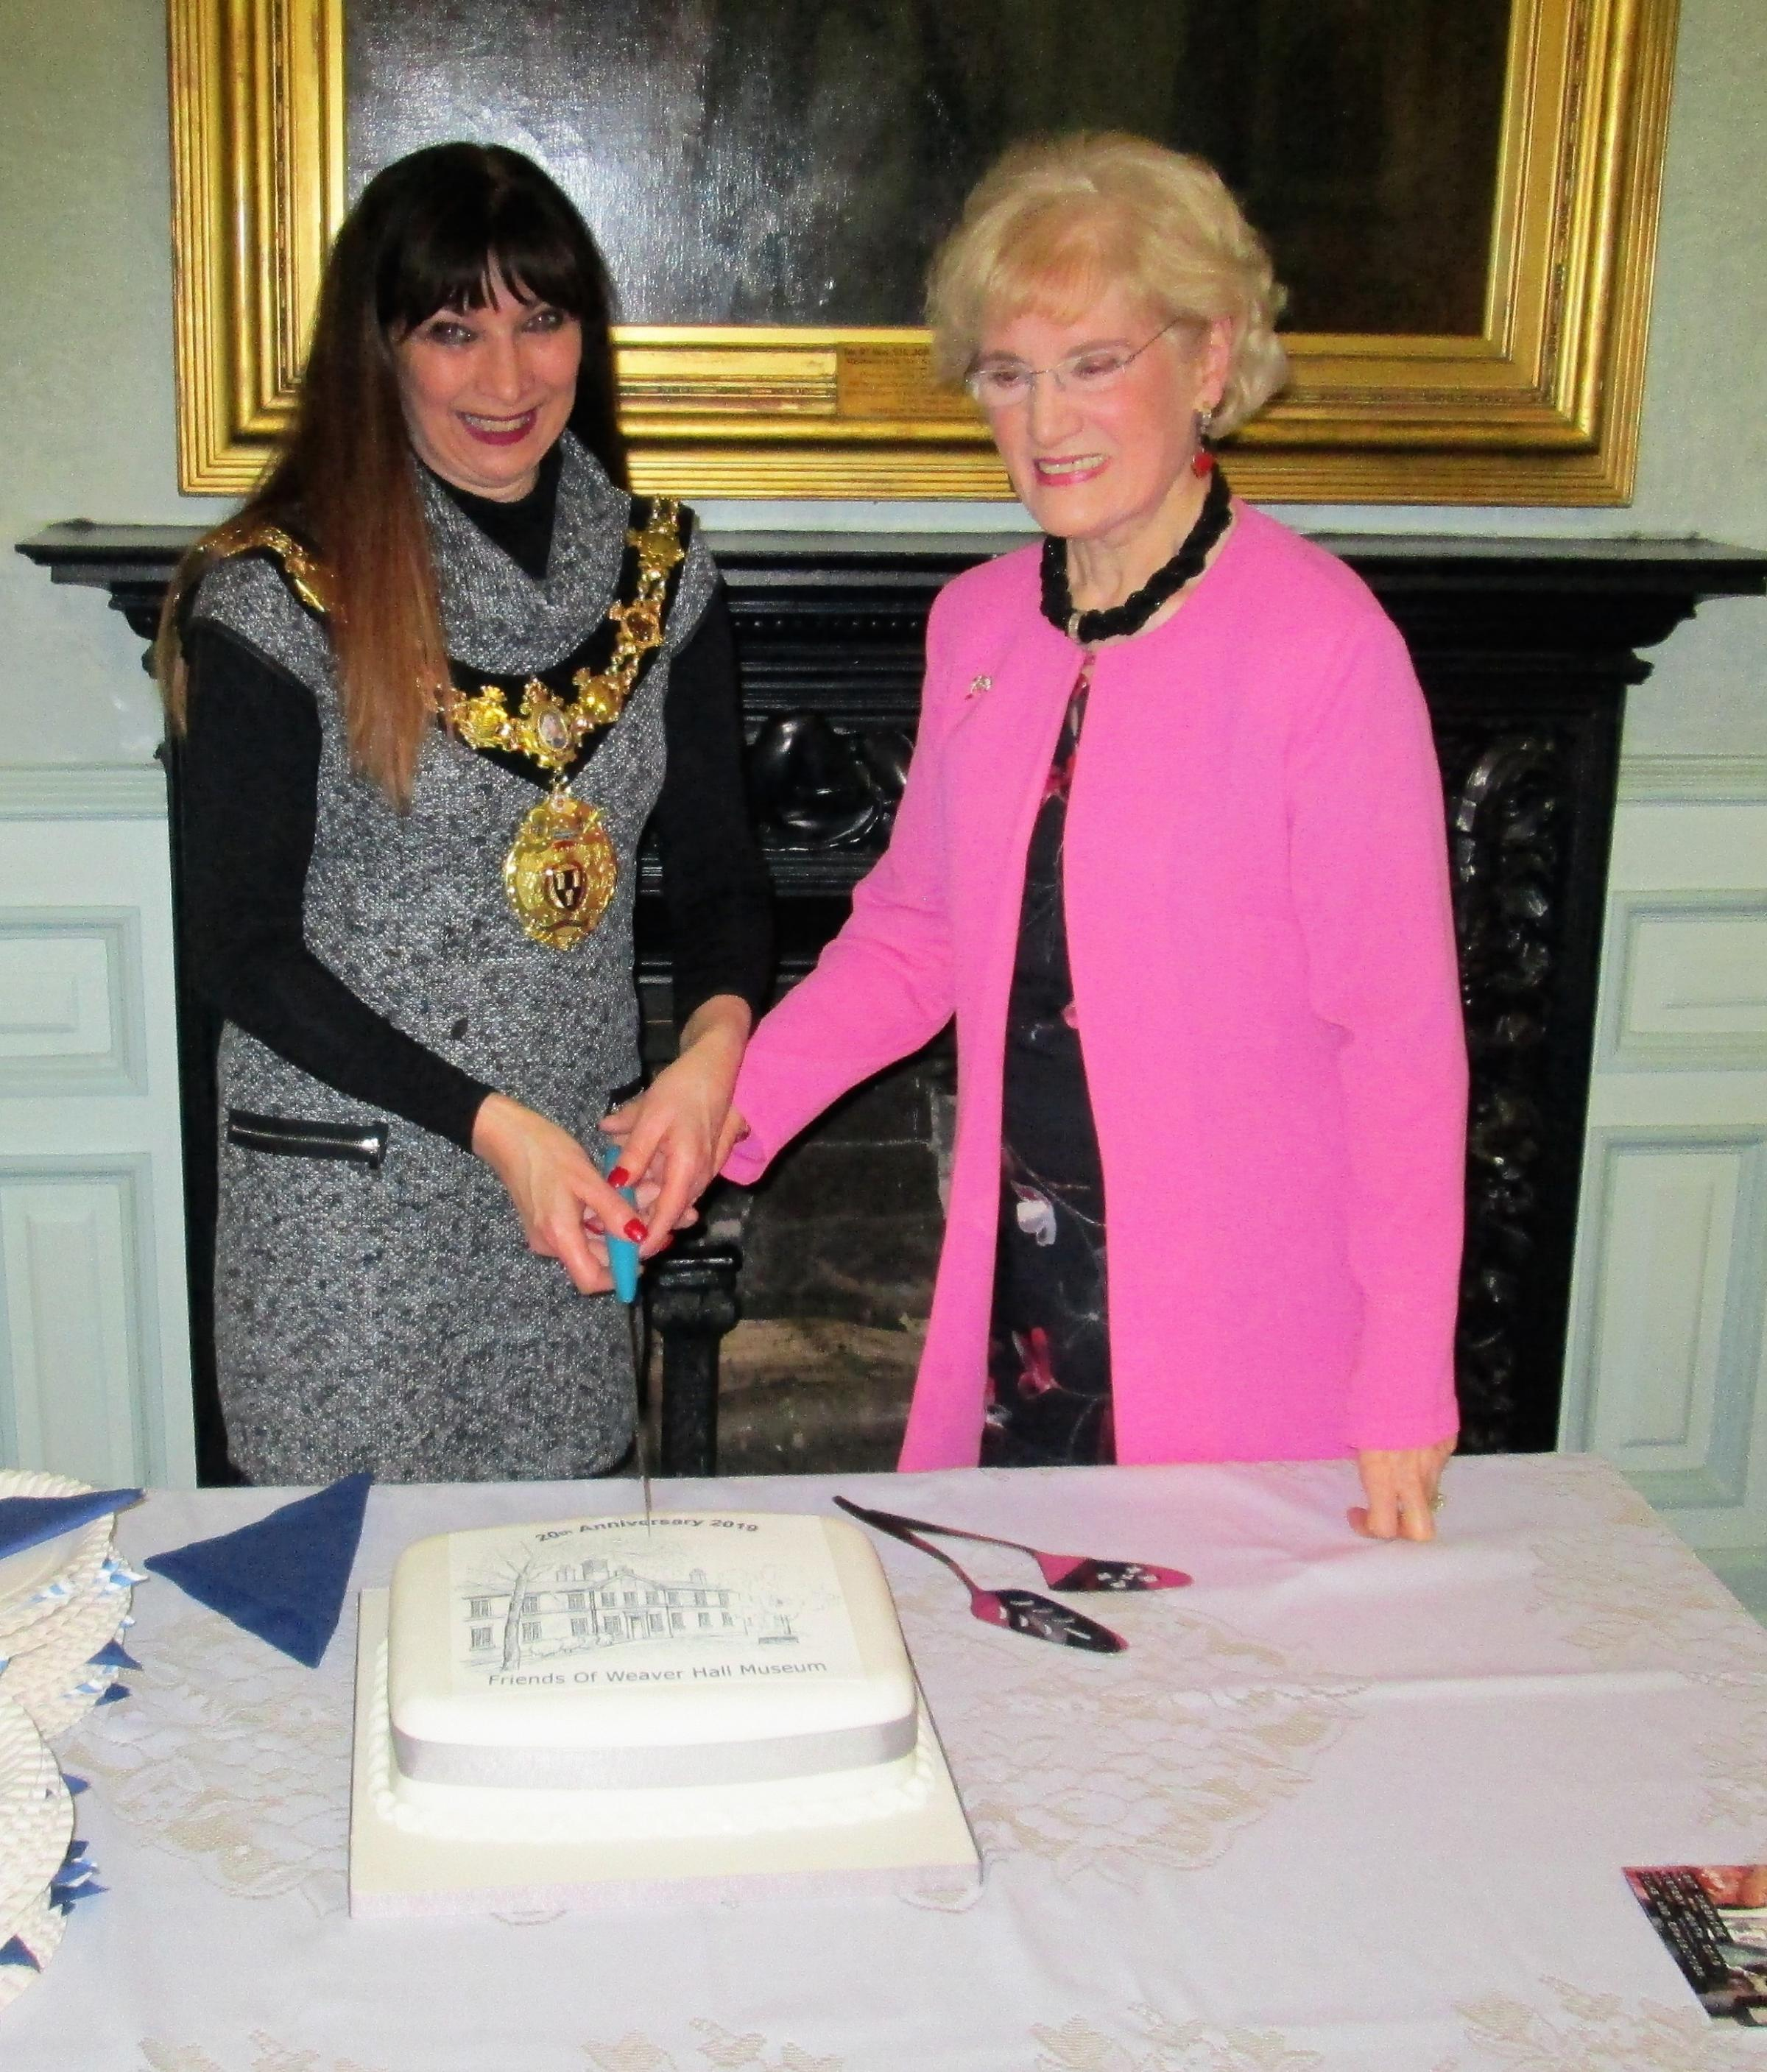 Town mayor Cllr Alison Gerrard cuts the cake at the celebration